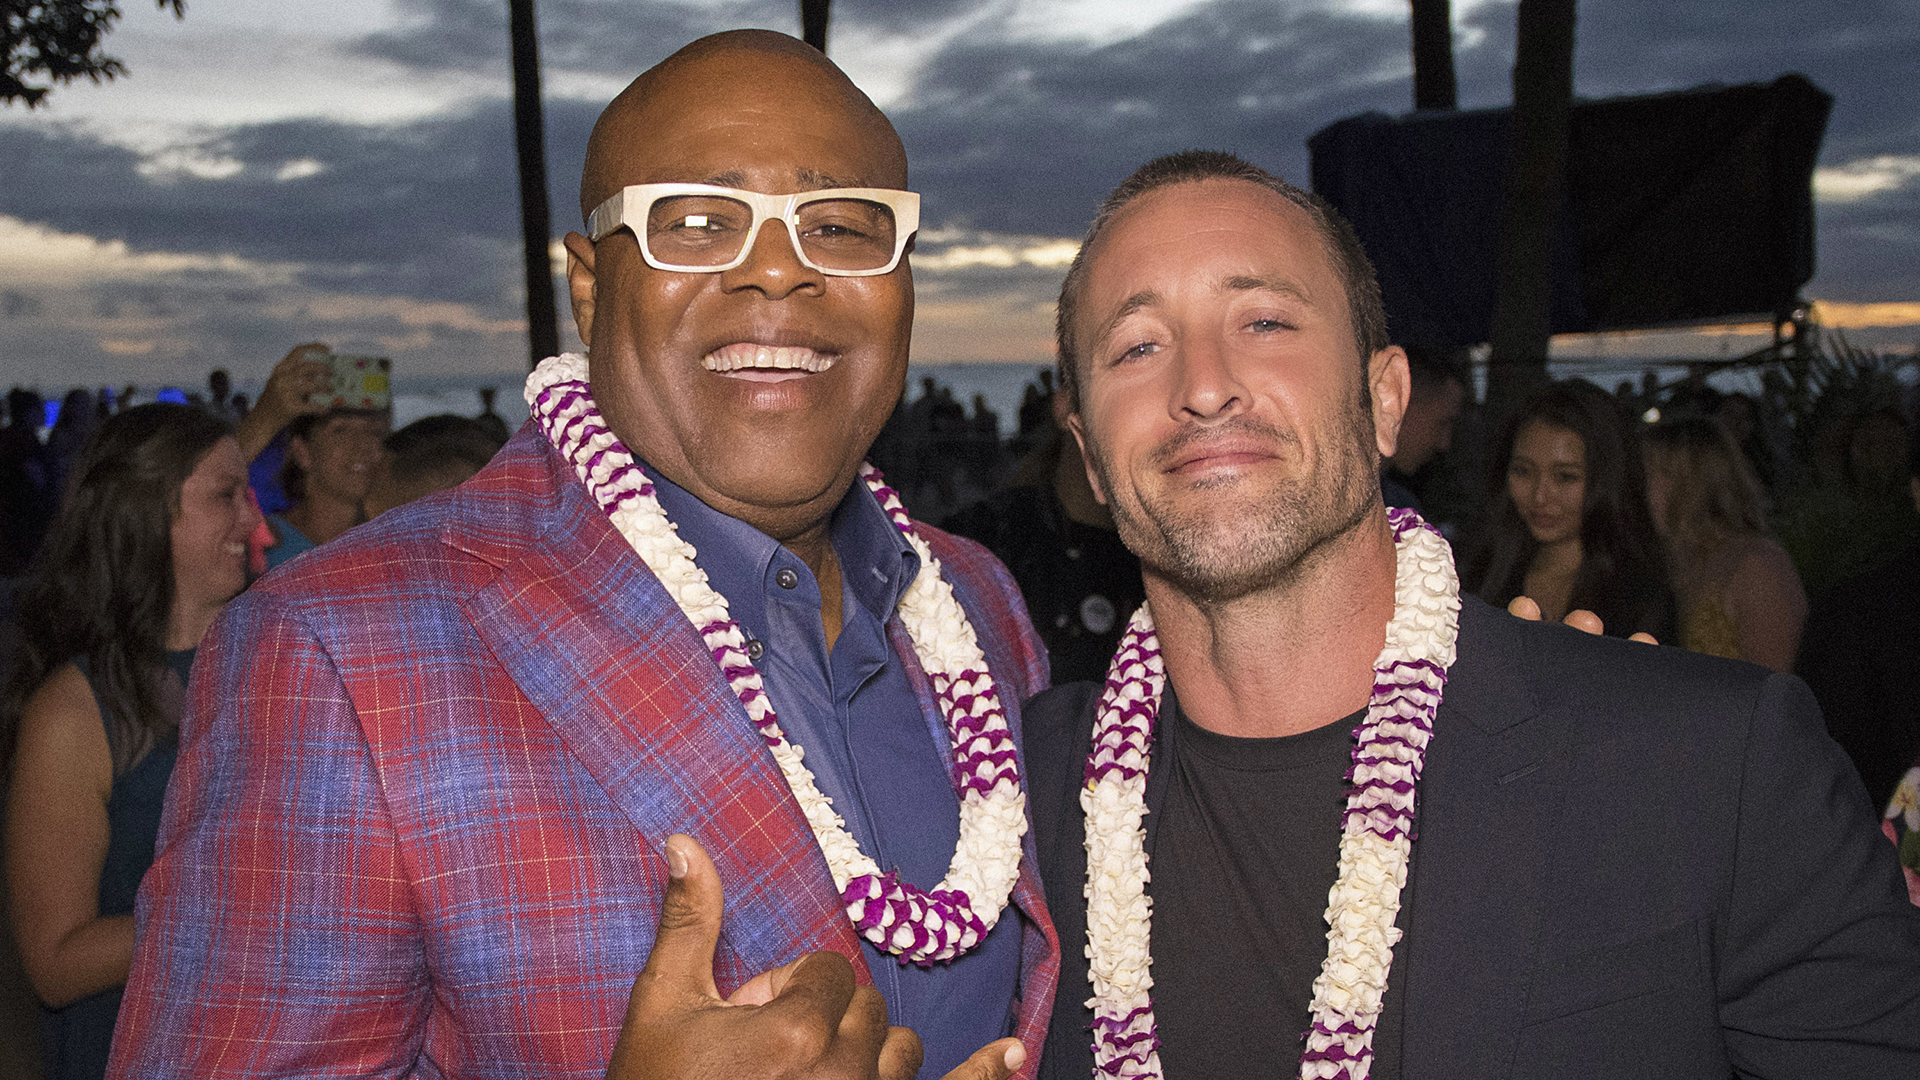 Chi McBride and Alex O'Loughlin pose together in their matching leis.